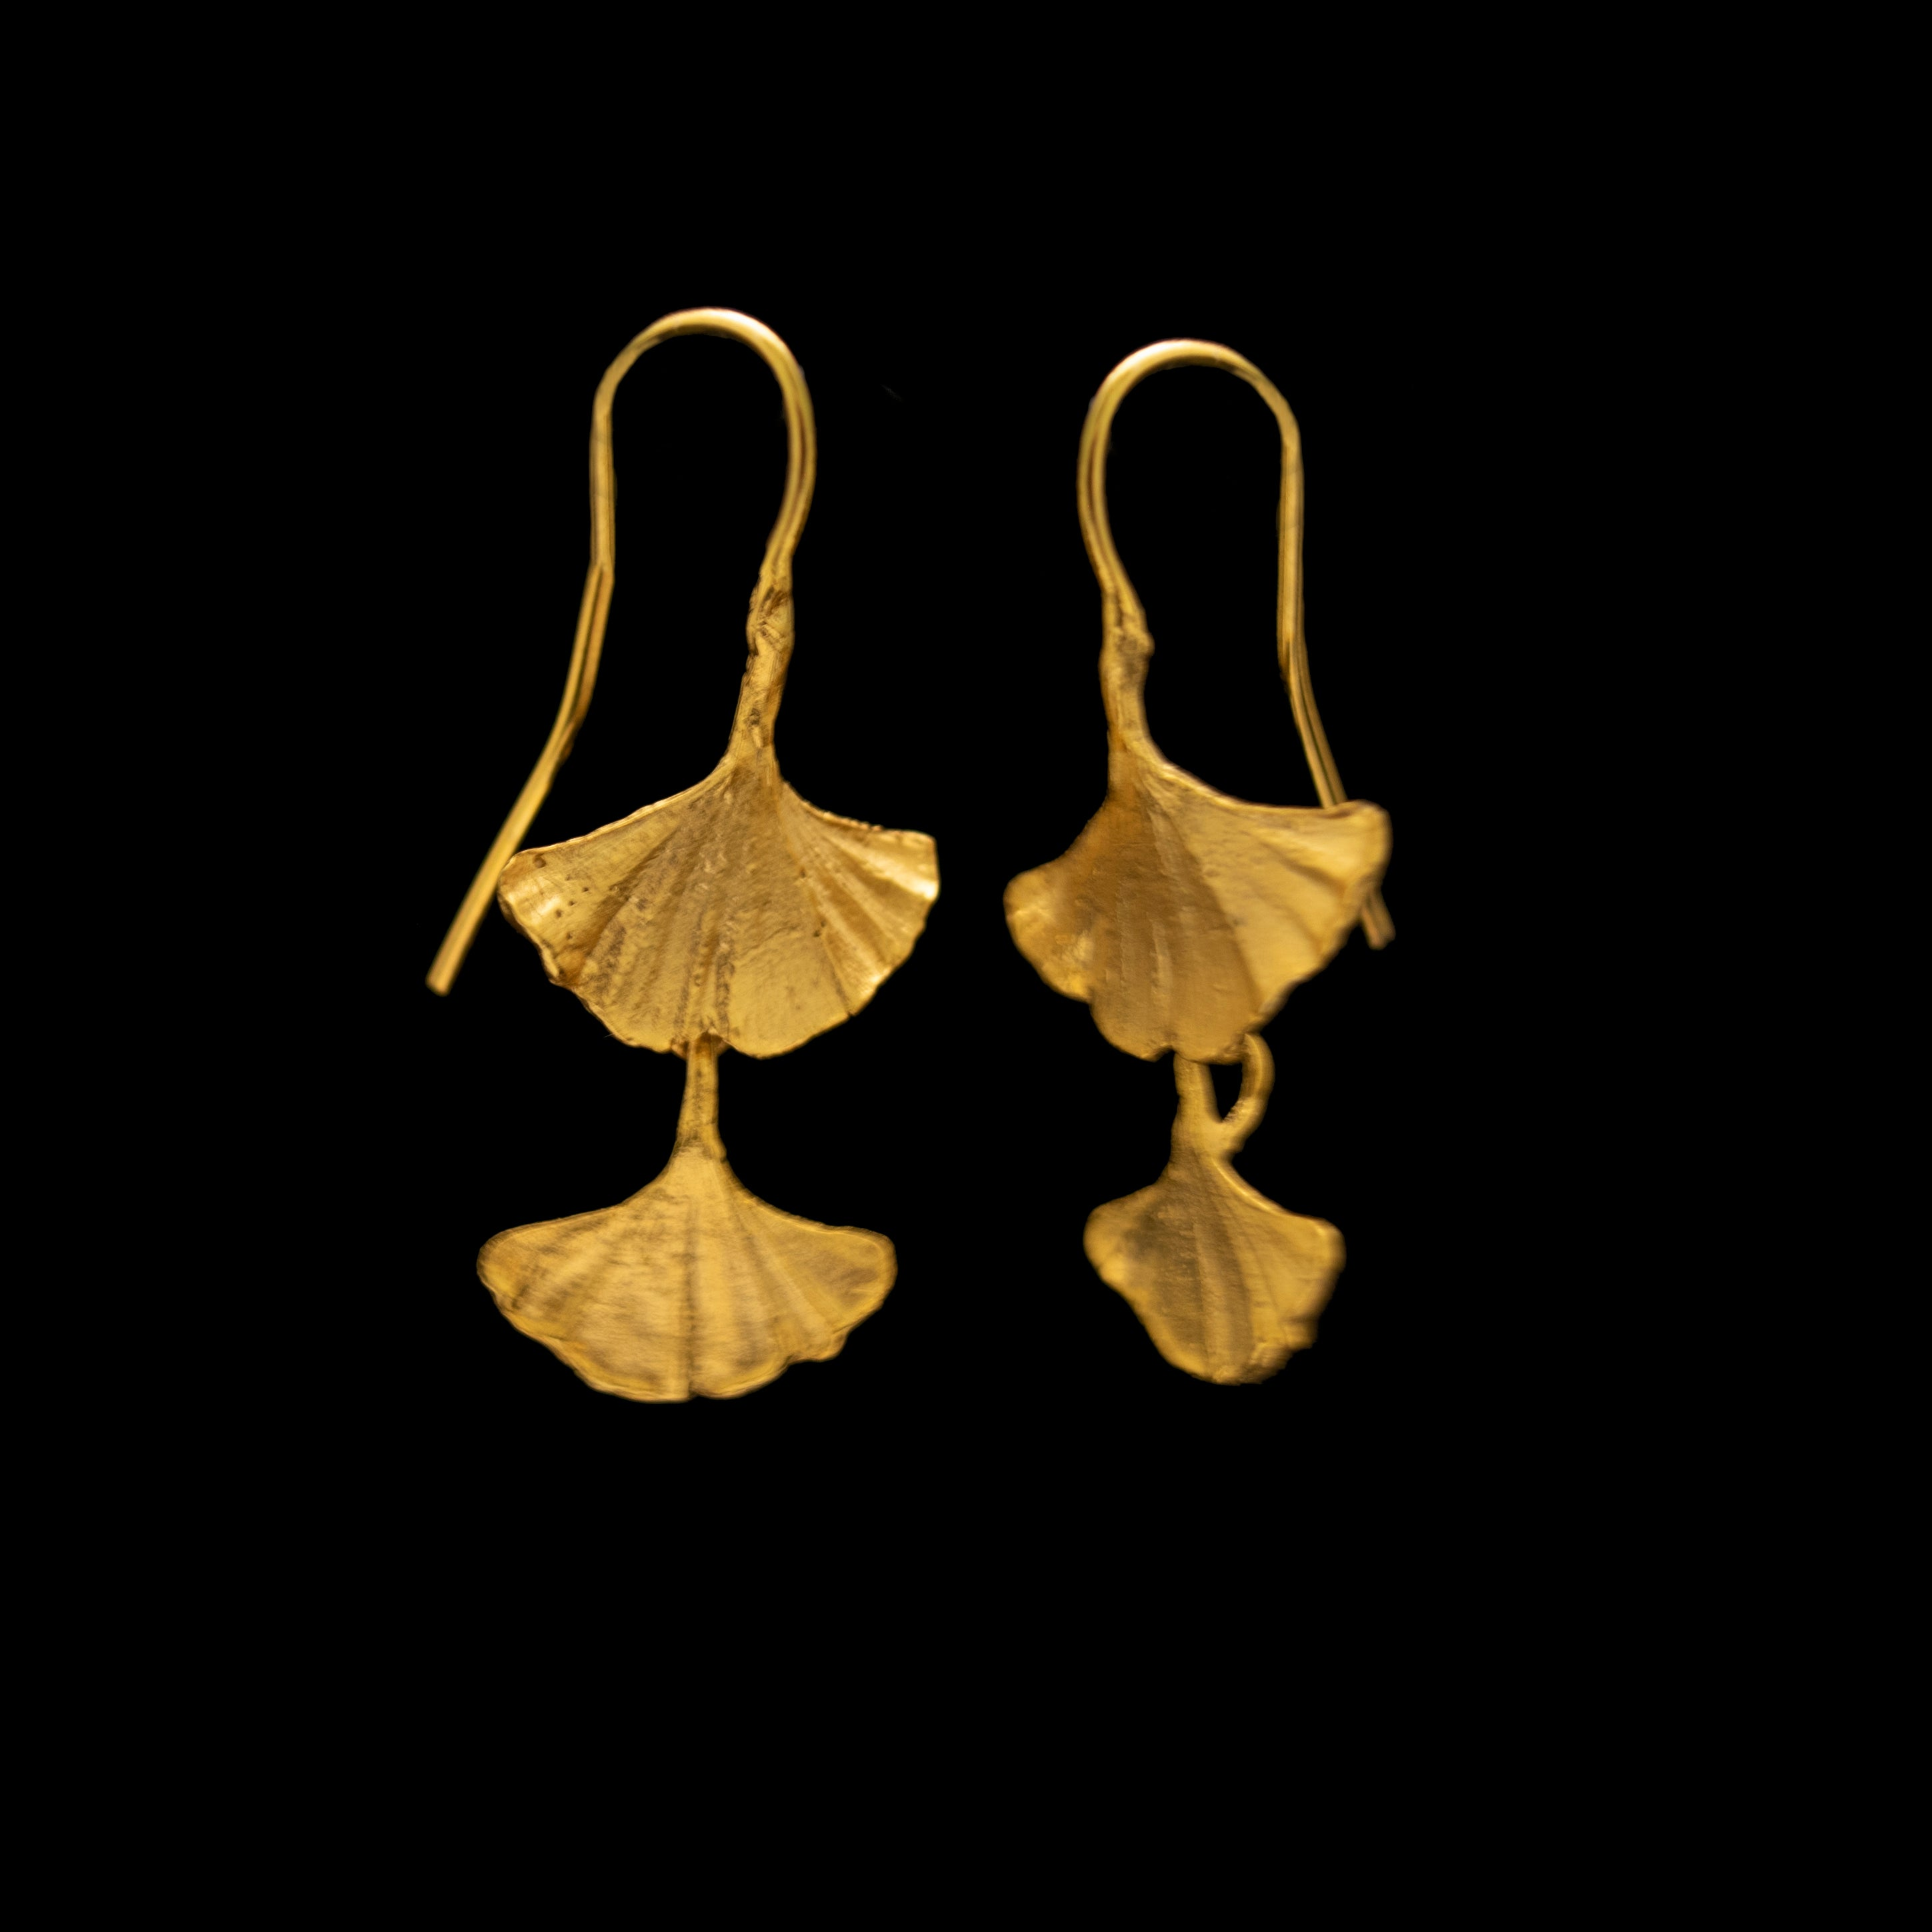 Fine Ginkgo Earrings - Double Leaf